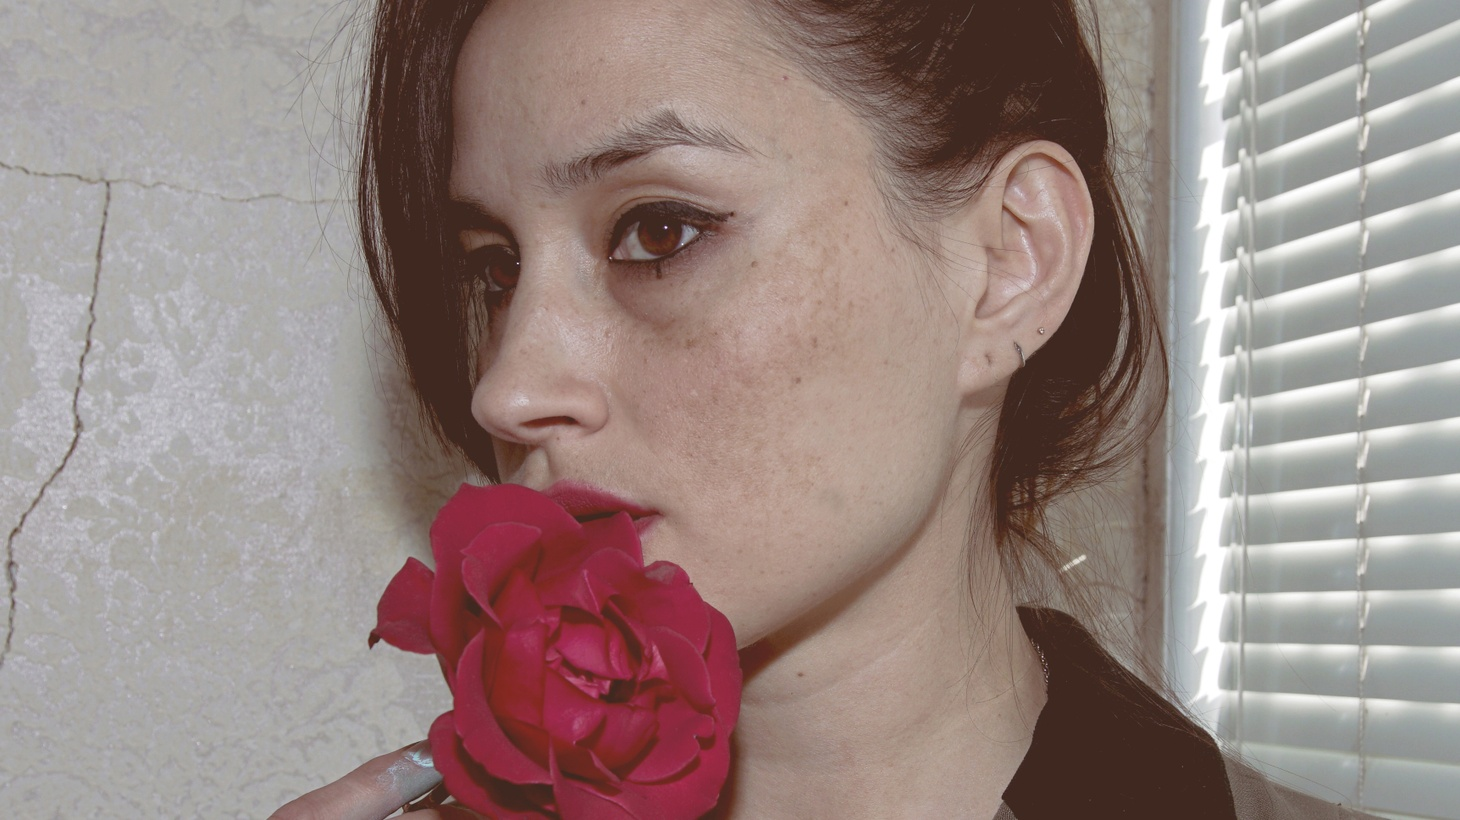 Warpaint co-founder vocalist, guitarist, and producer Theresa Wayman has a solo project she's calling by her nickname TT. TT has been working on her own music in between tours and being a single mom.